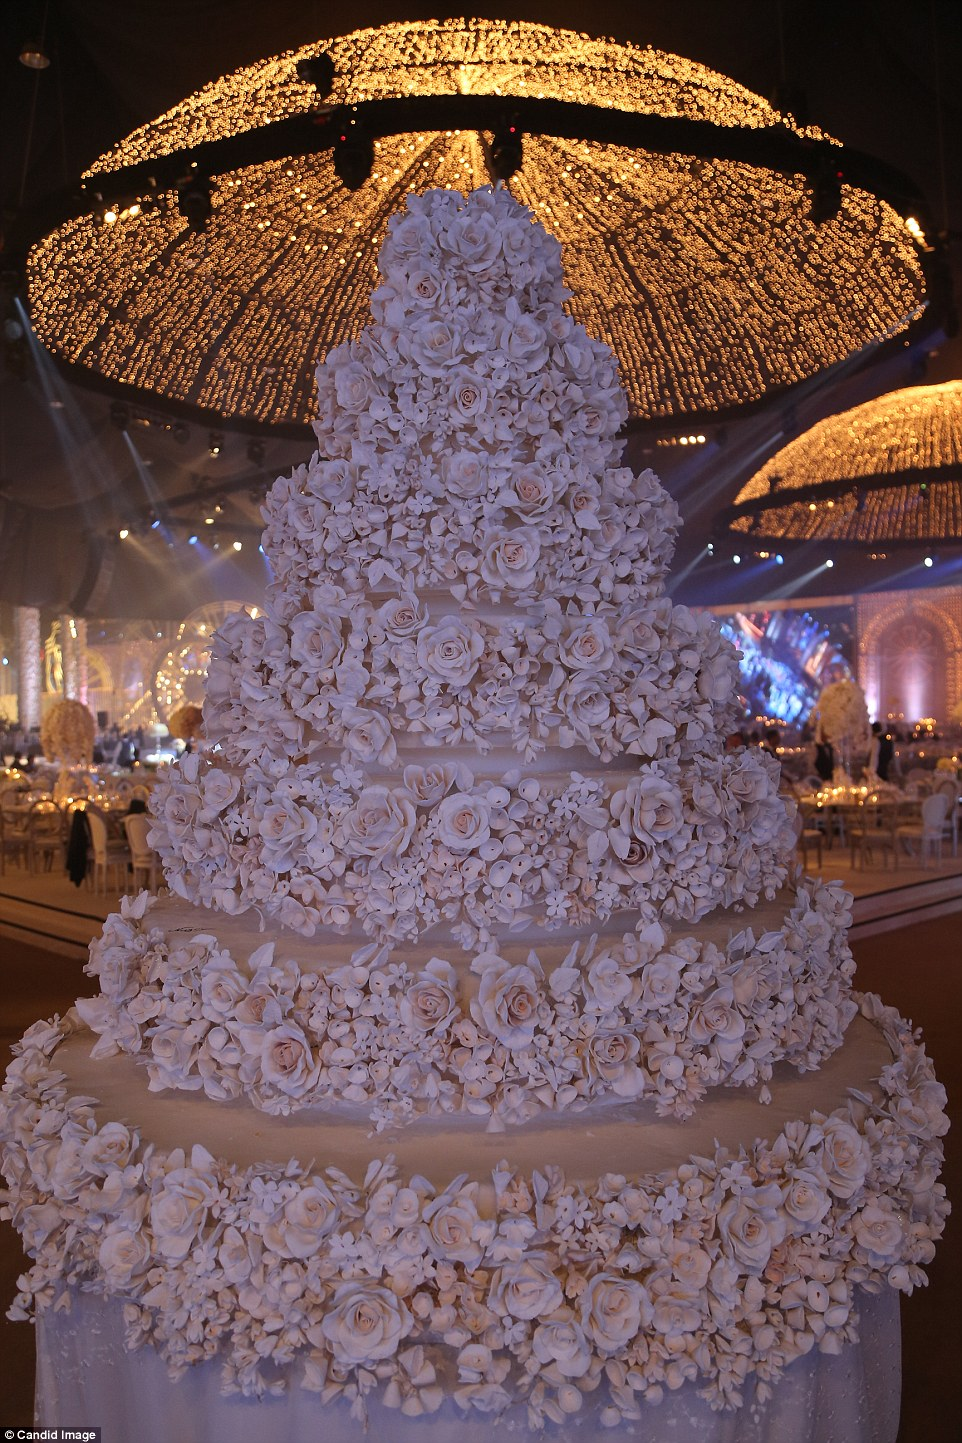 Inside the extravagant weddings of the very wealthy